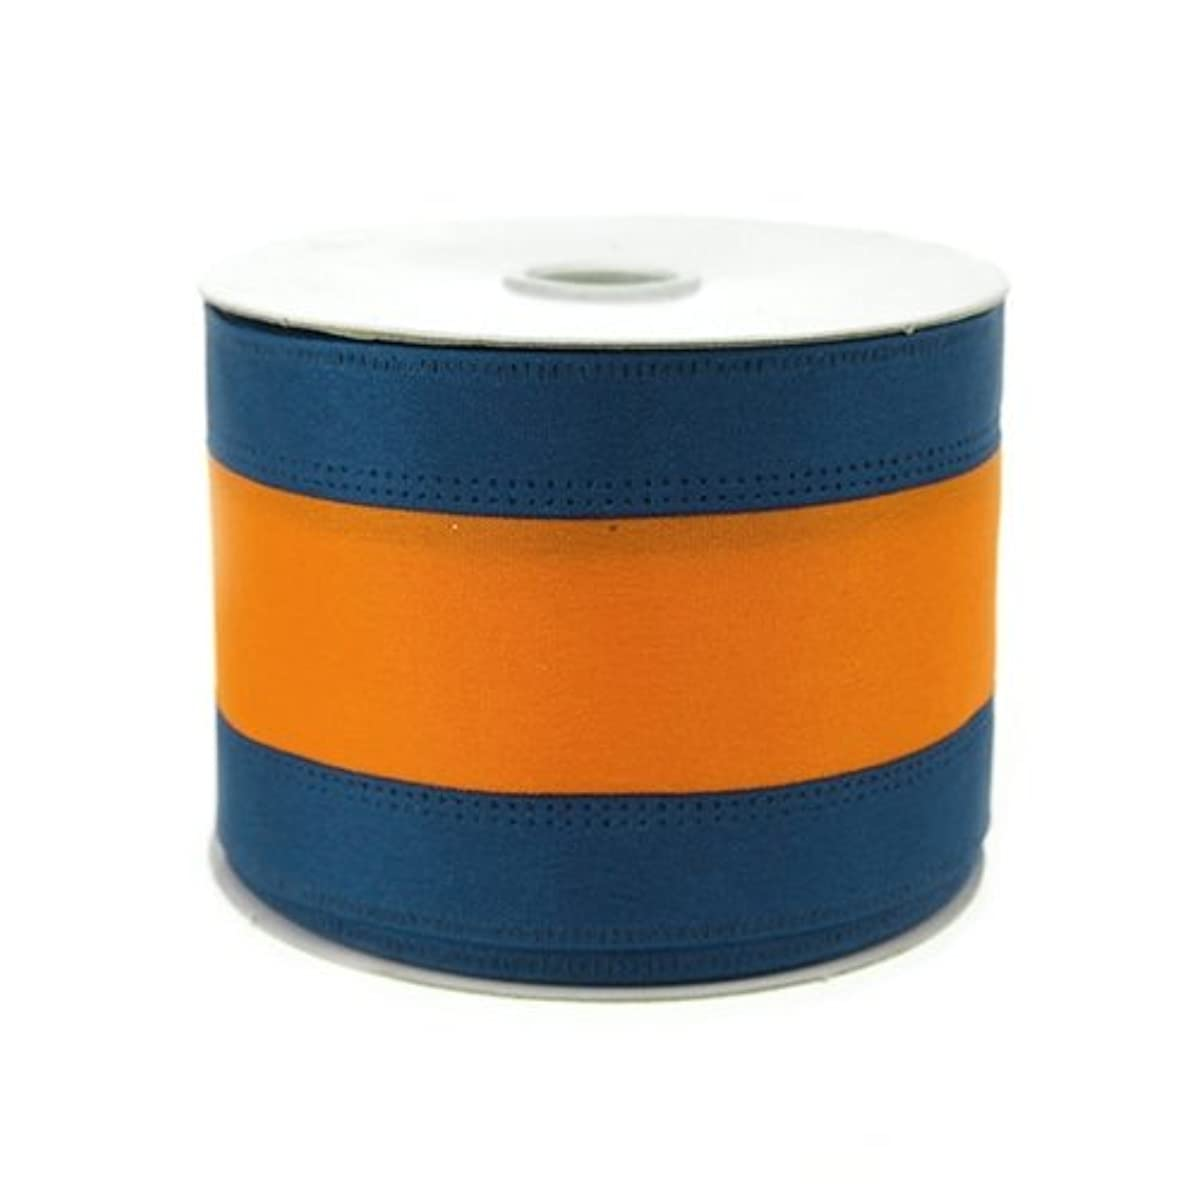 Homeford Firefly Imports Stripe Sport Theme Ribbon Wired Edge, 2-1/2-Inch, 10 Yards, Navy/Orange, 2-1/2